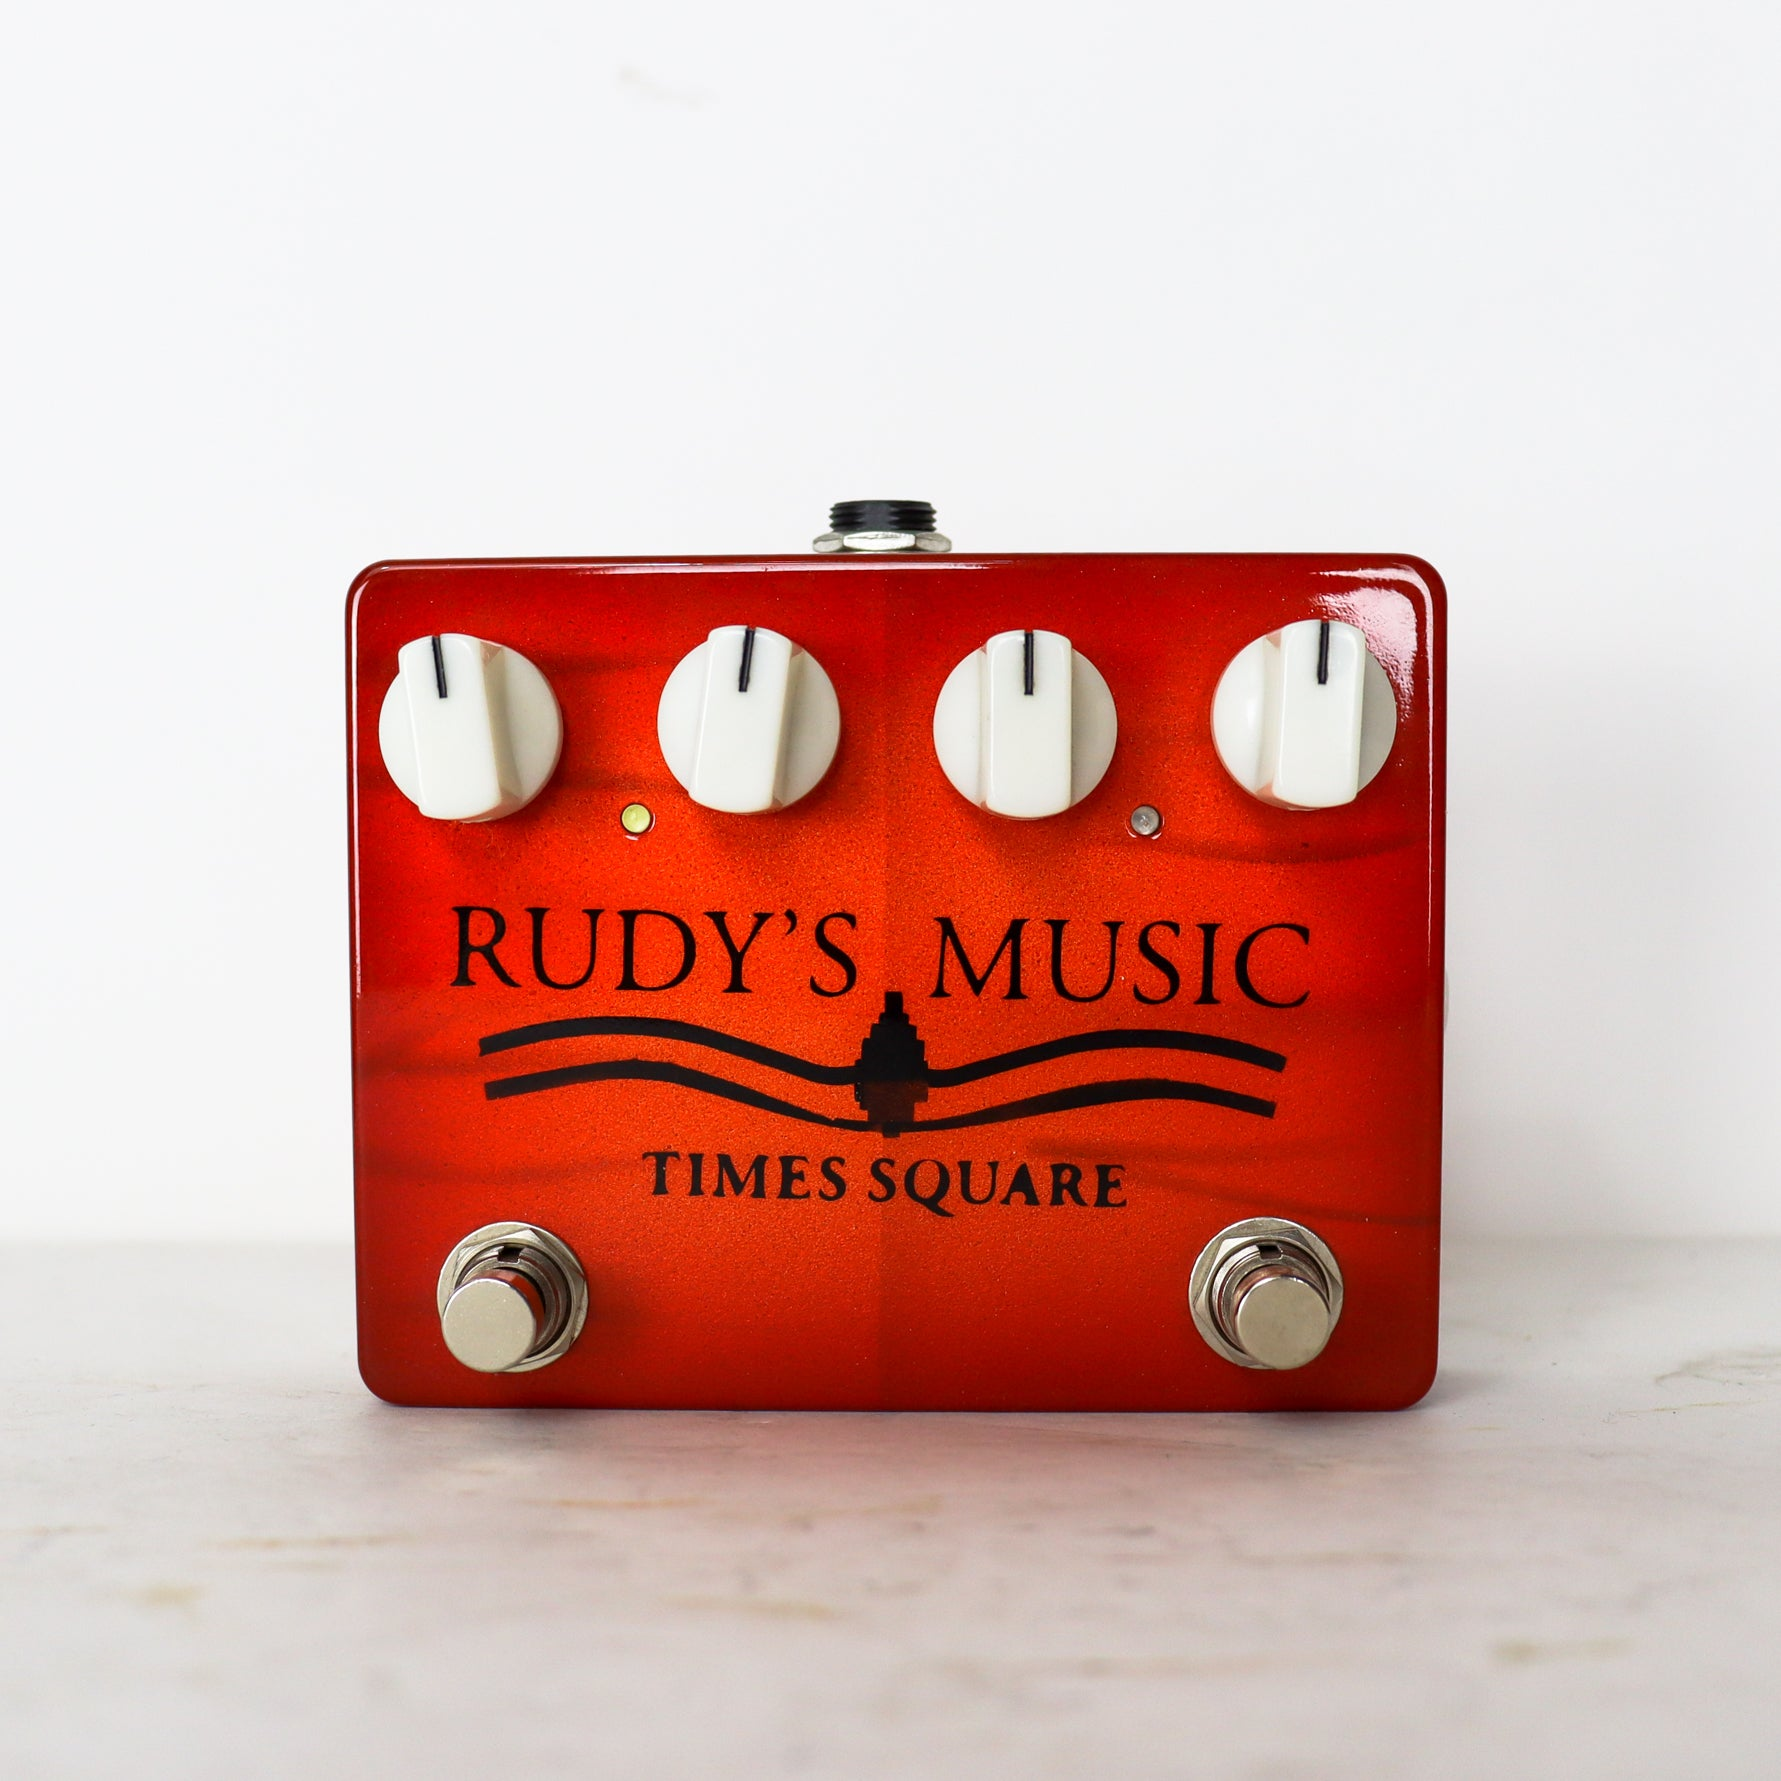 Solid Gold FX Surf Rider Deluxe Limited Edition Rudy's Music model with Times Square logo